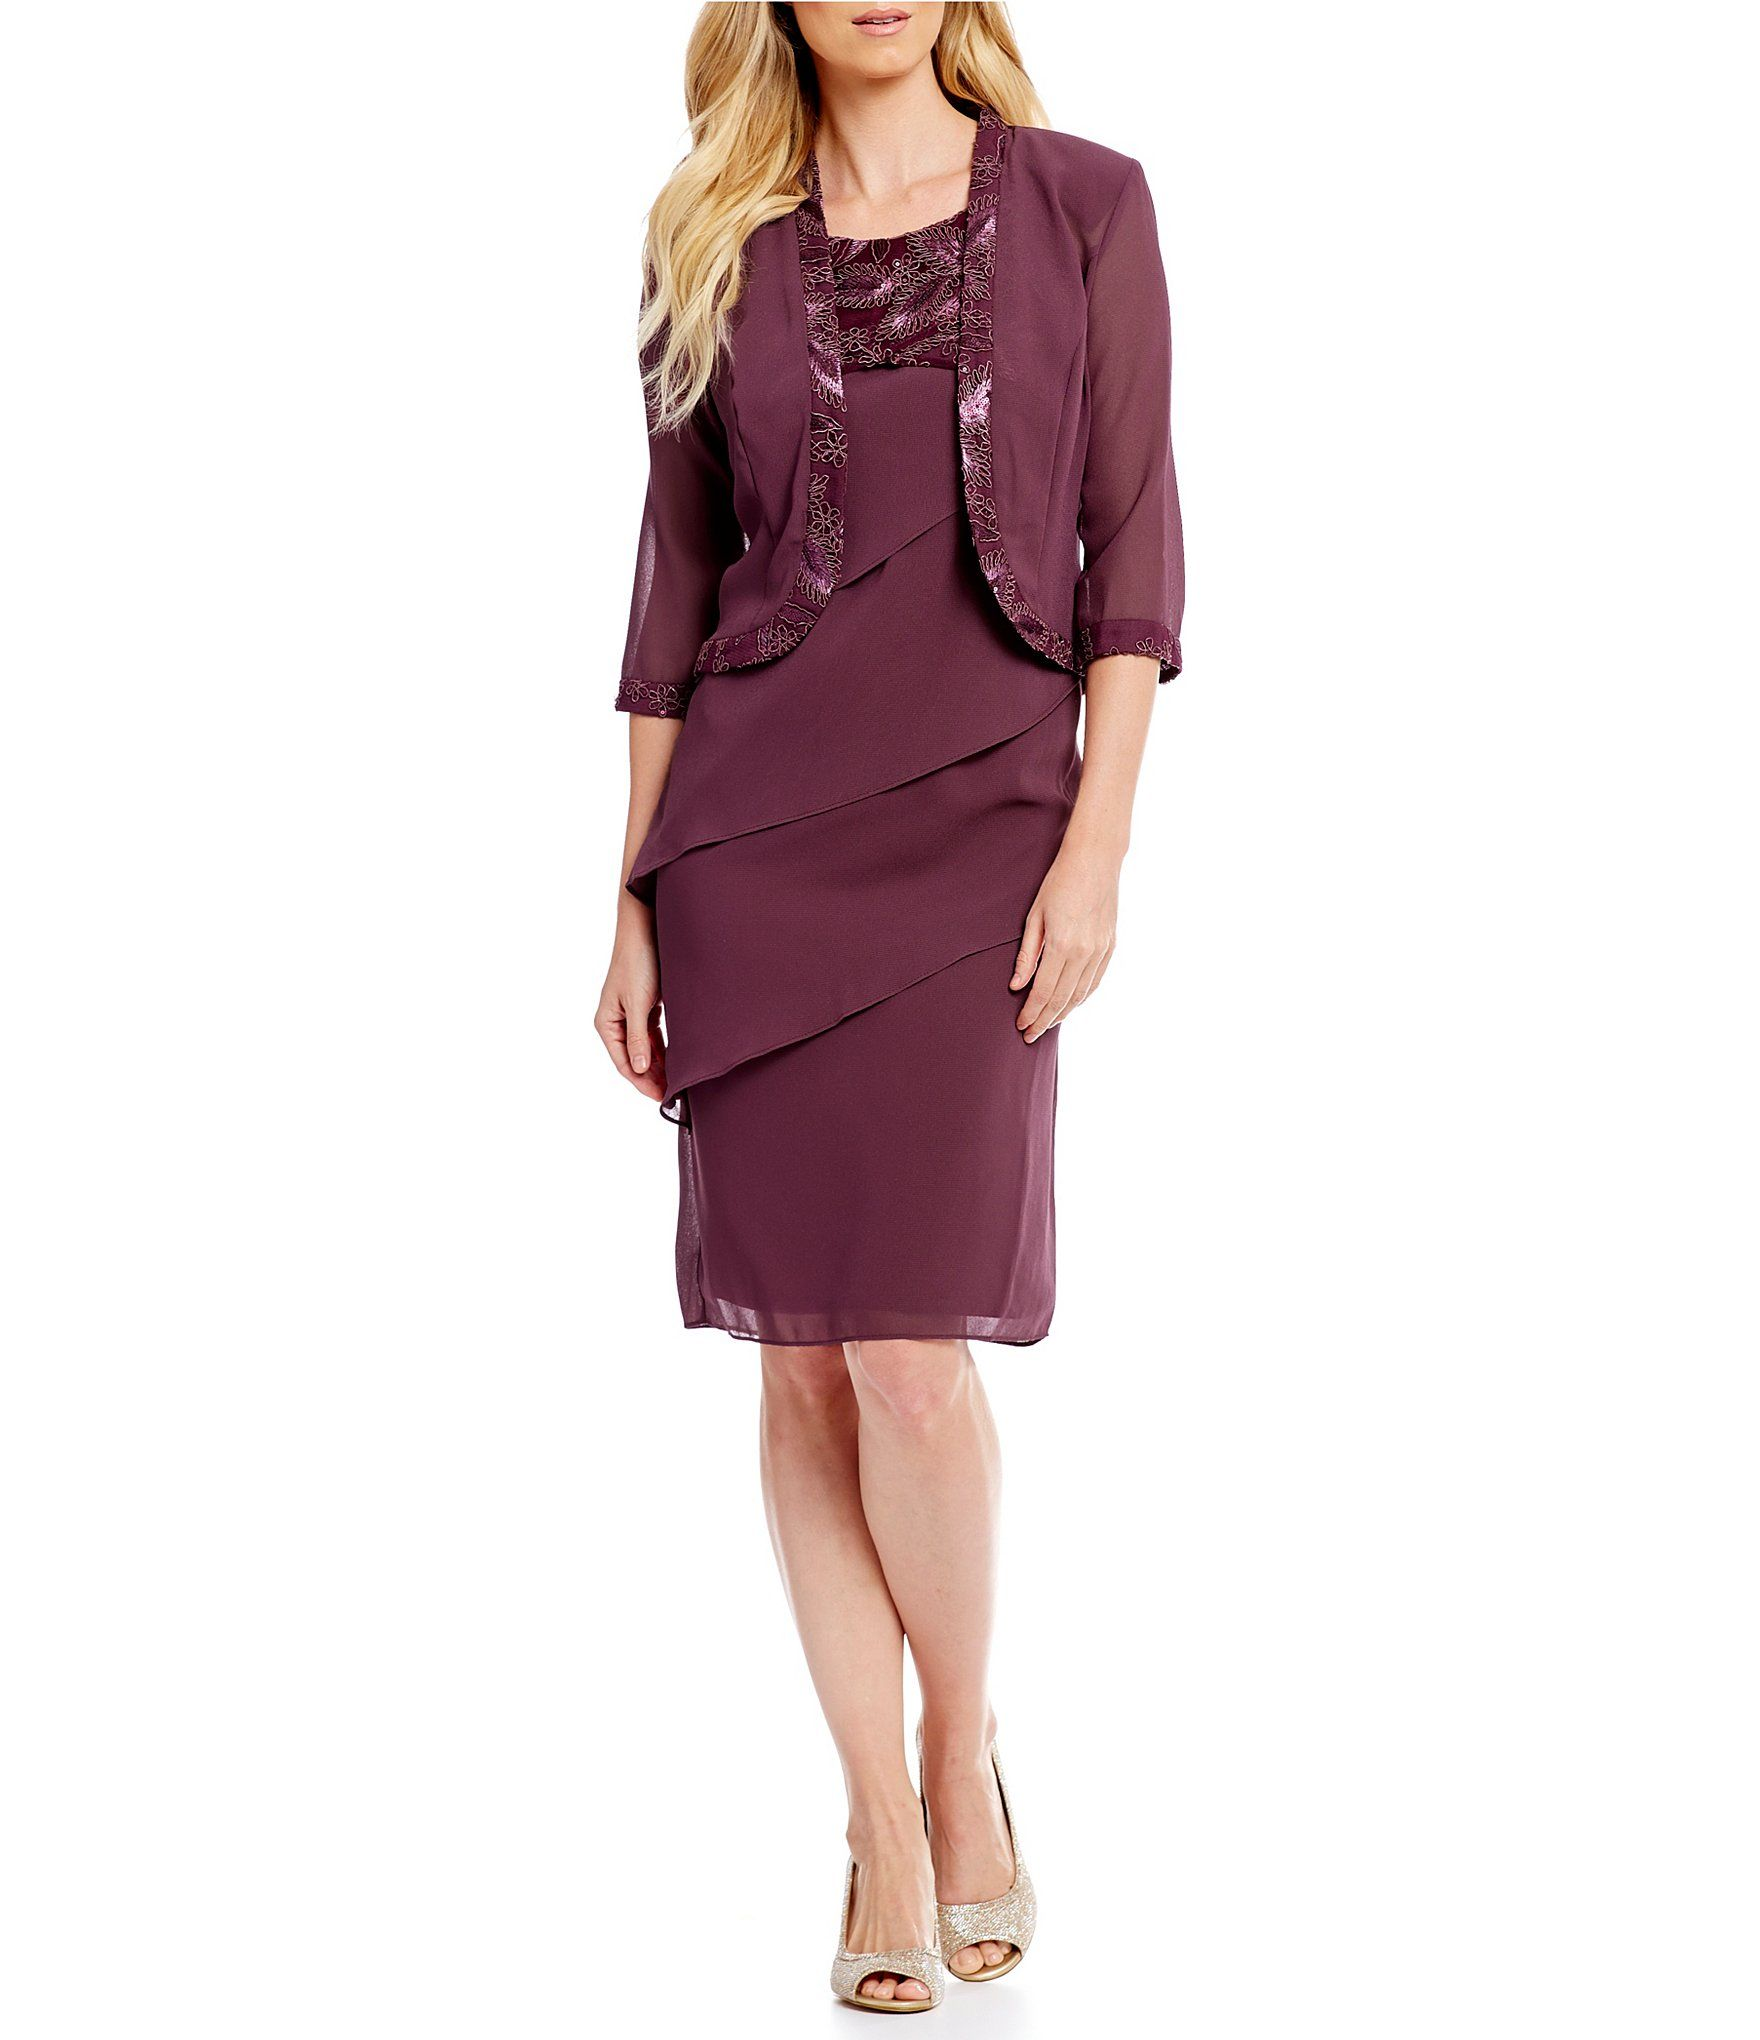 70170f7a974 Le Bos Embroidered Asymmetrical Tiered Jacket Dress  Dillards ...